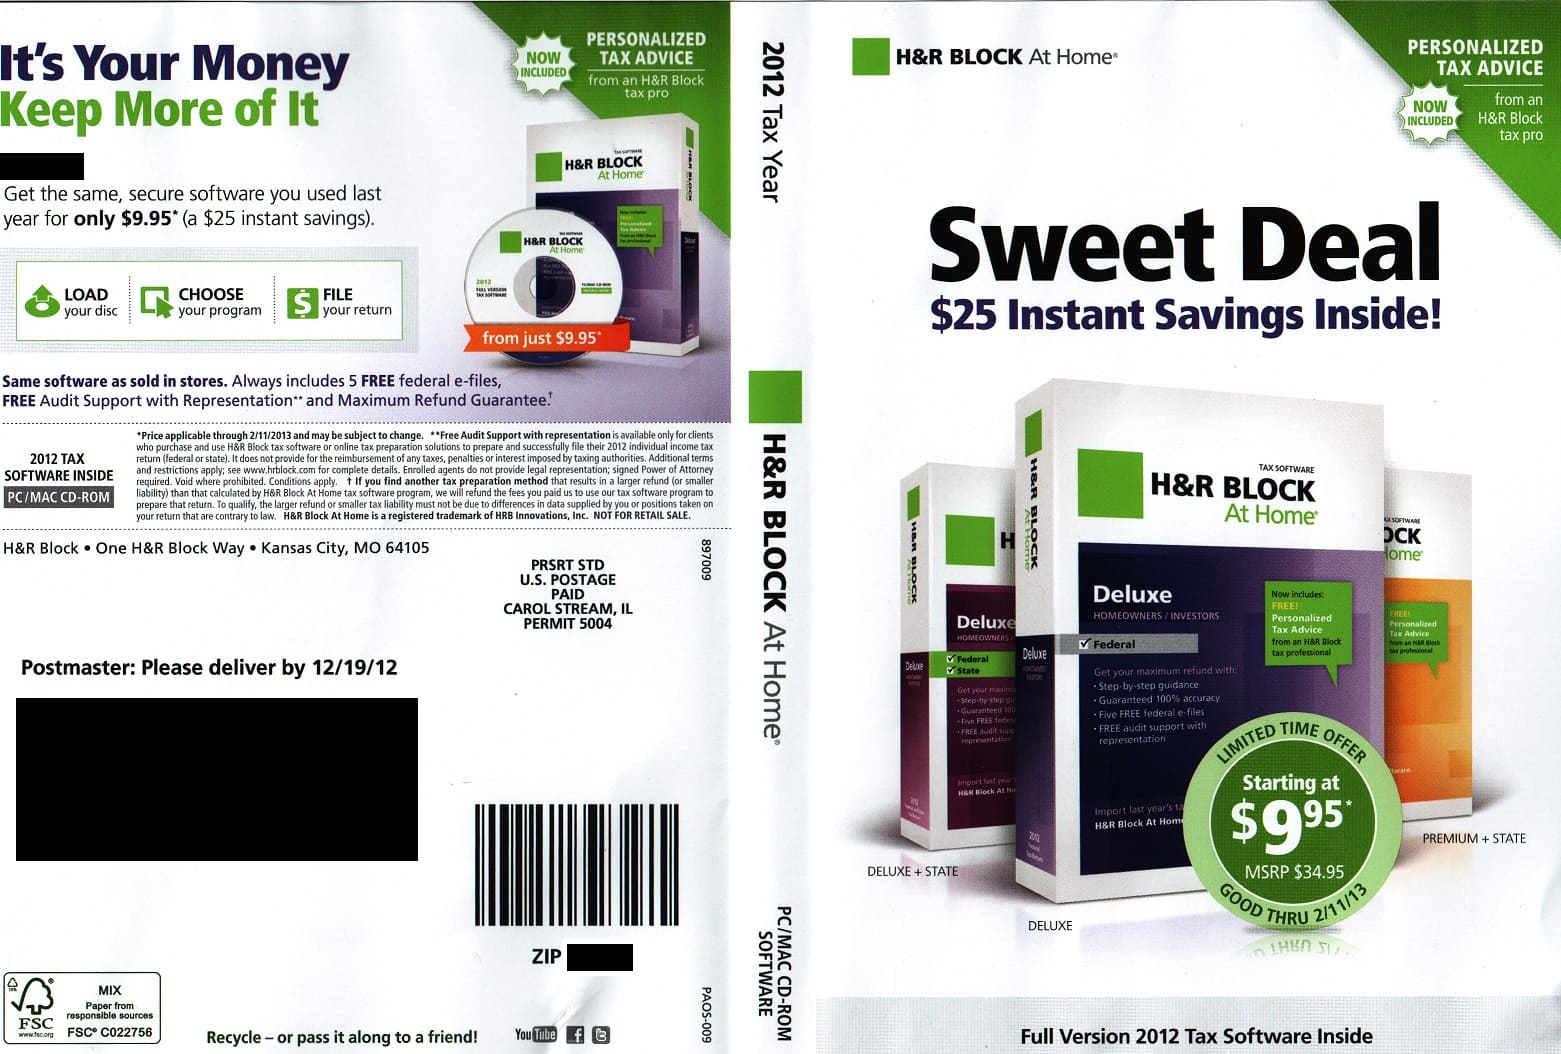 H&R Block At Home Deluxe+State eFile FREE *it's back*, Premium+State Program $19.95